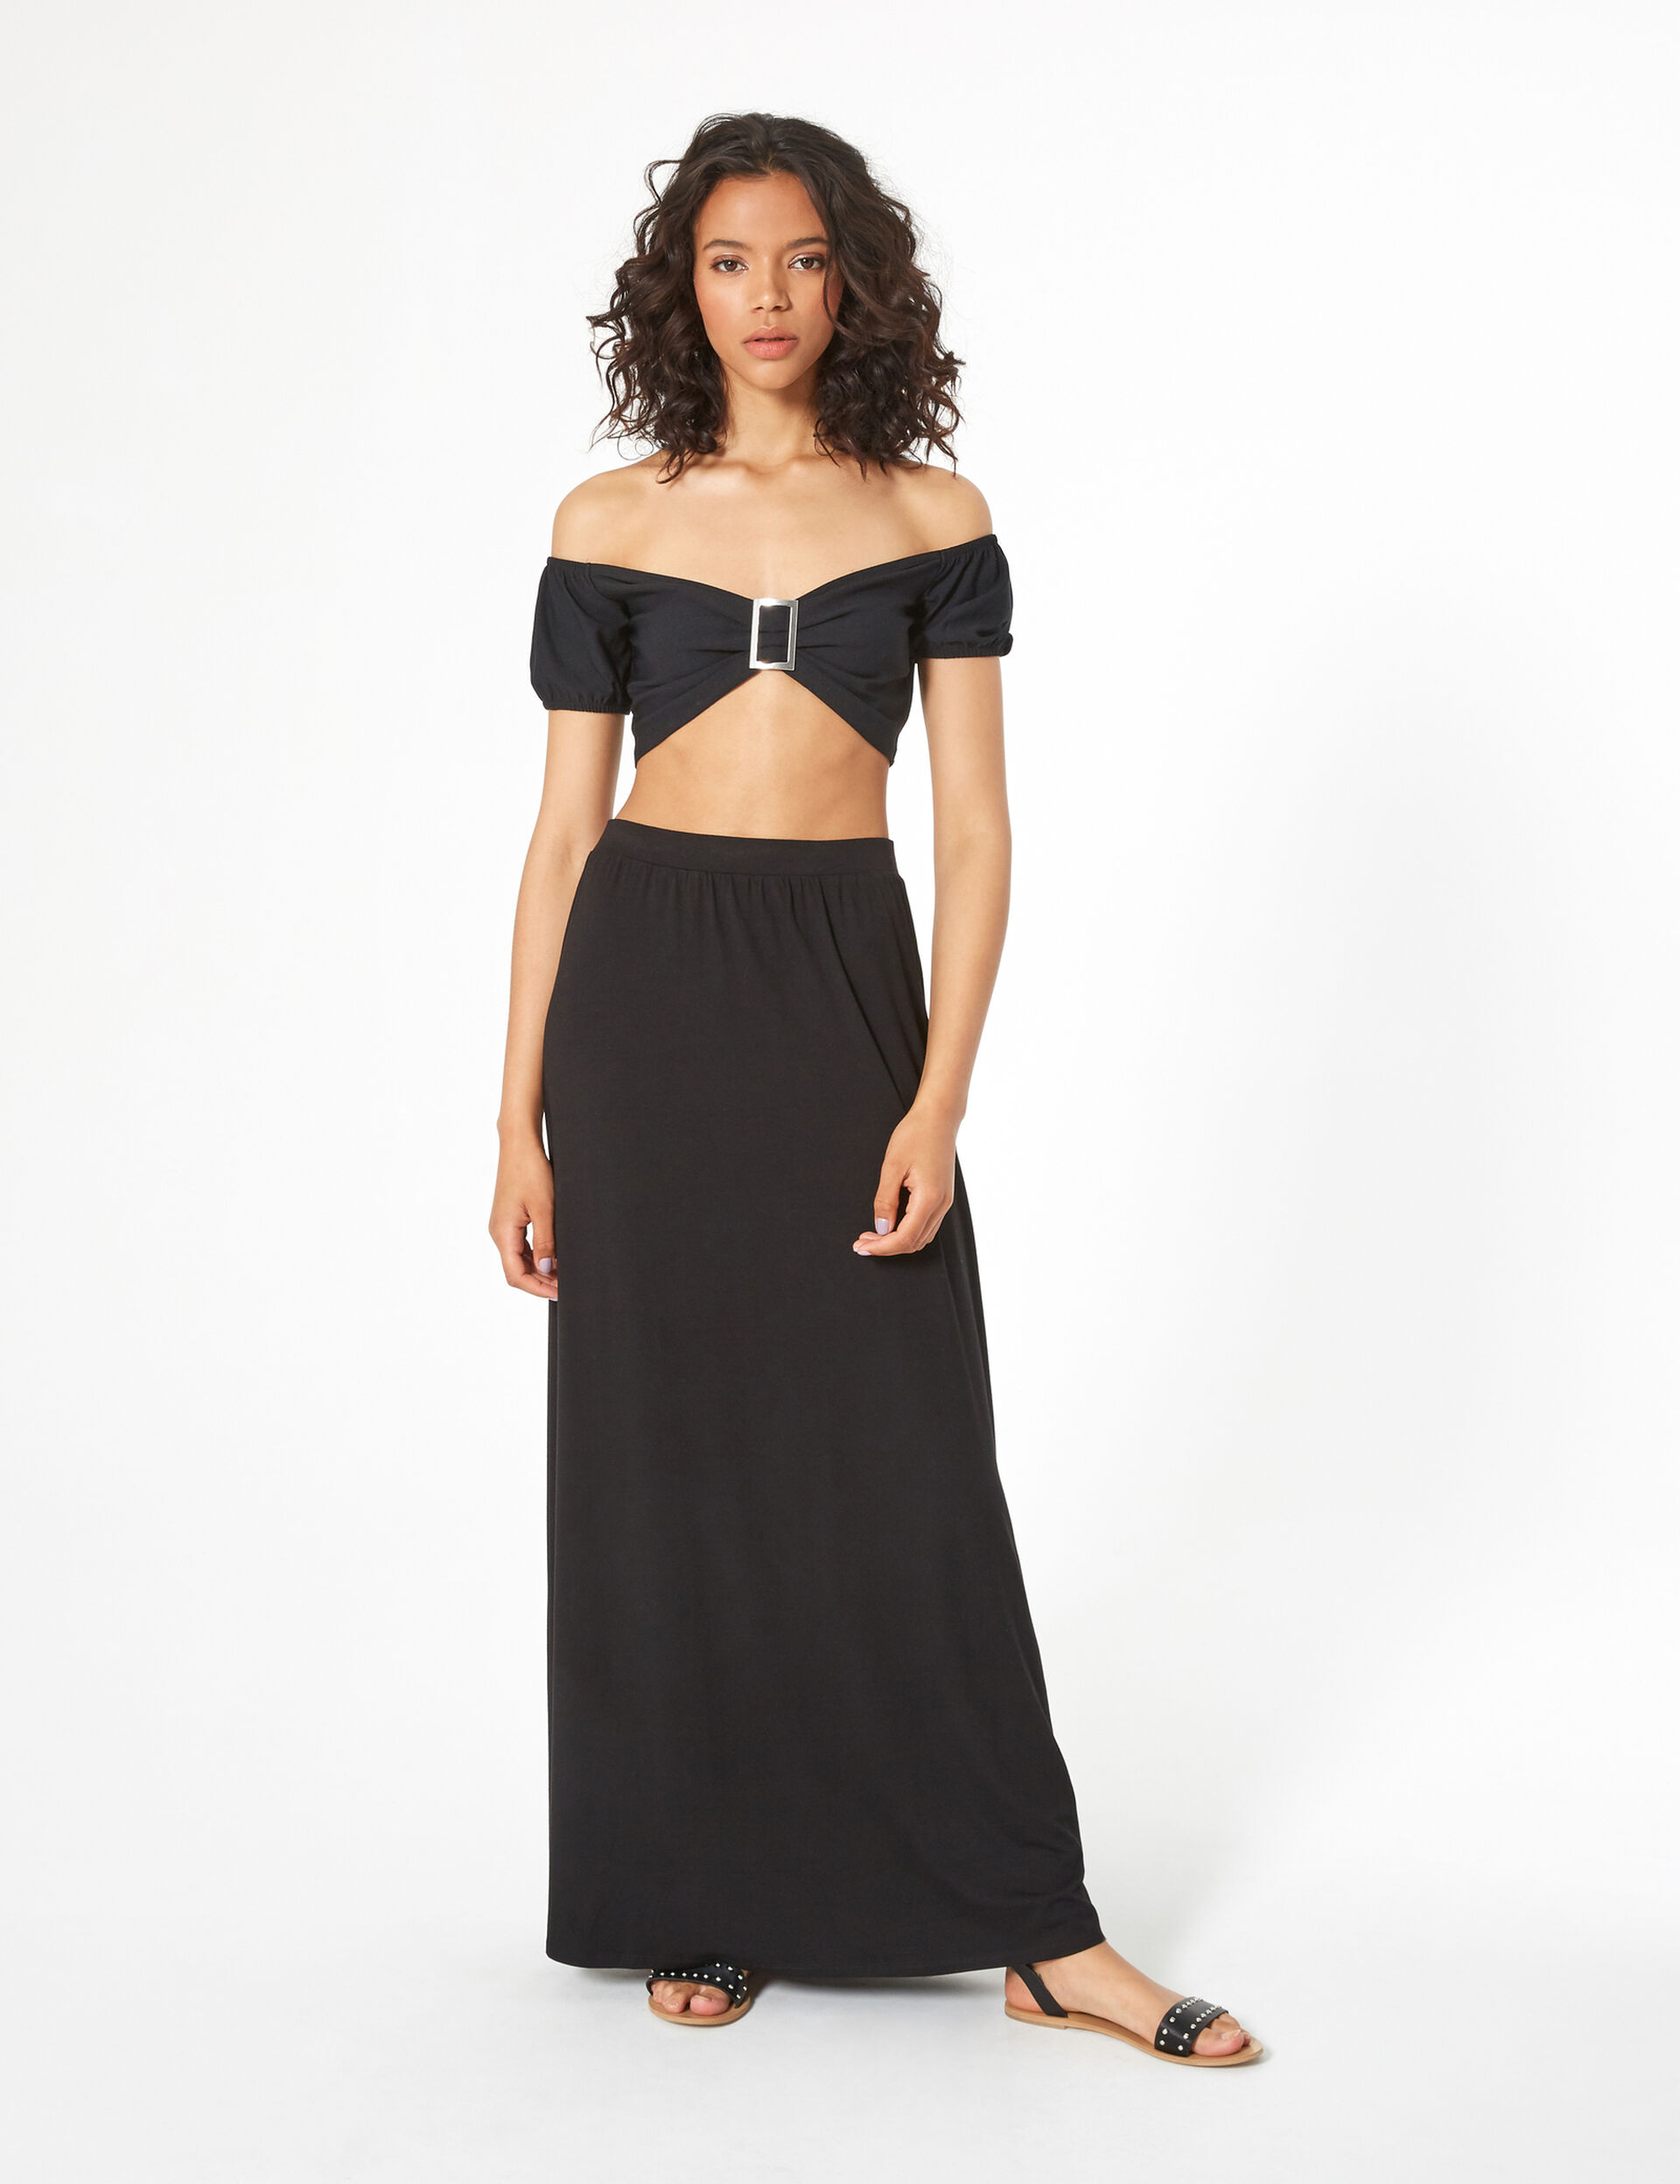 Crop top with ring detail